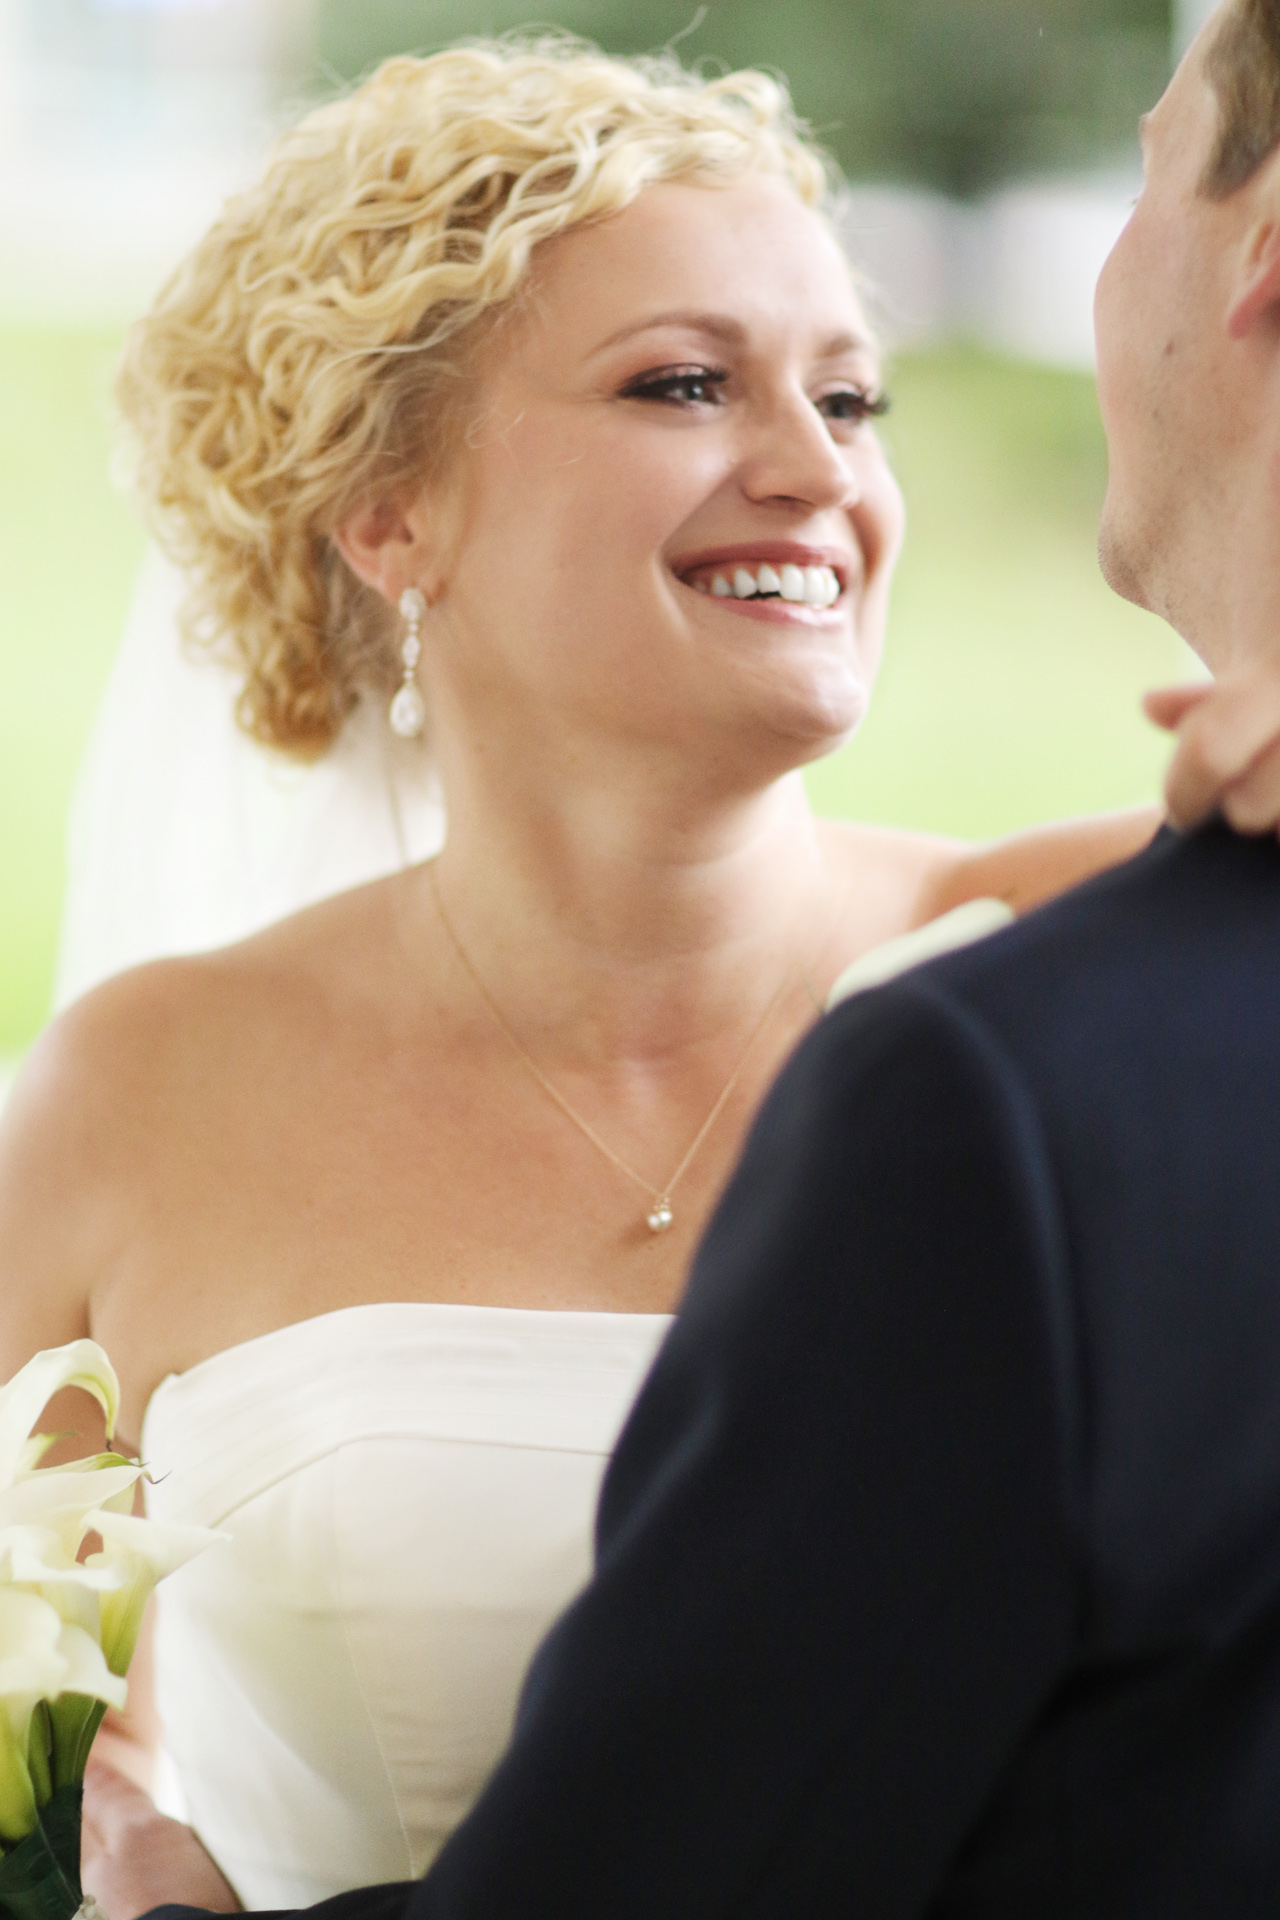 happy-bride-pittsburgh-wedding